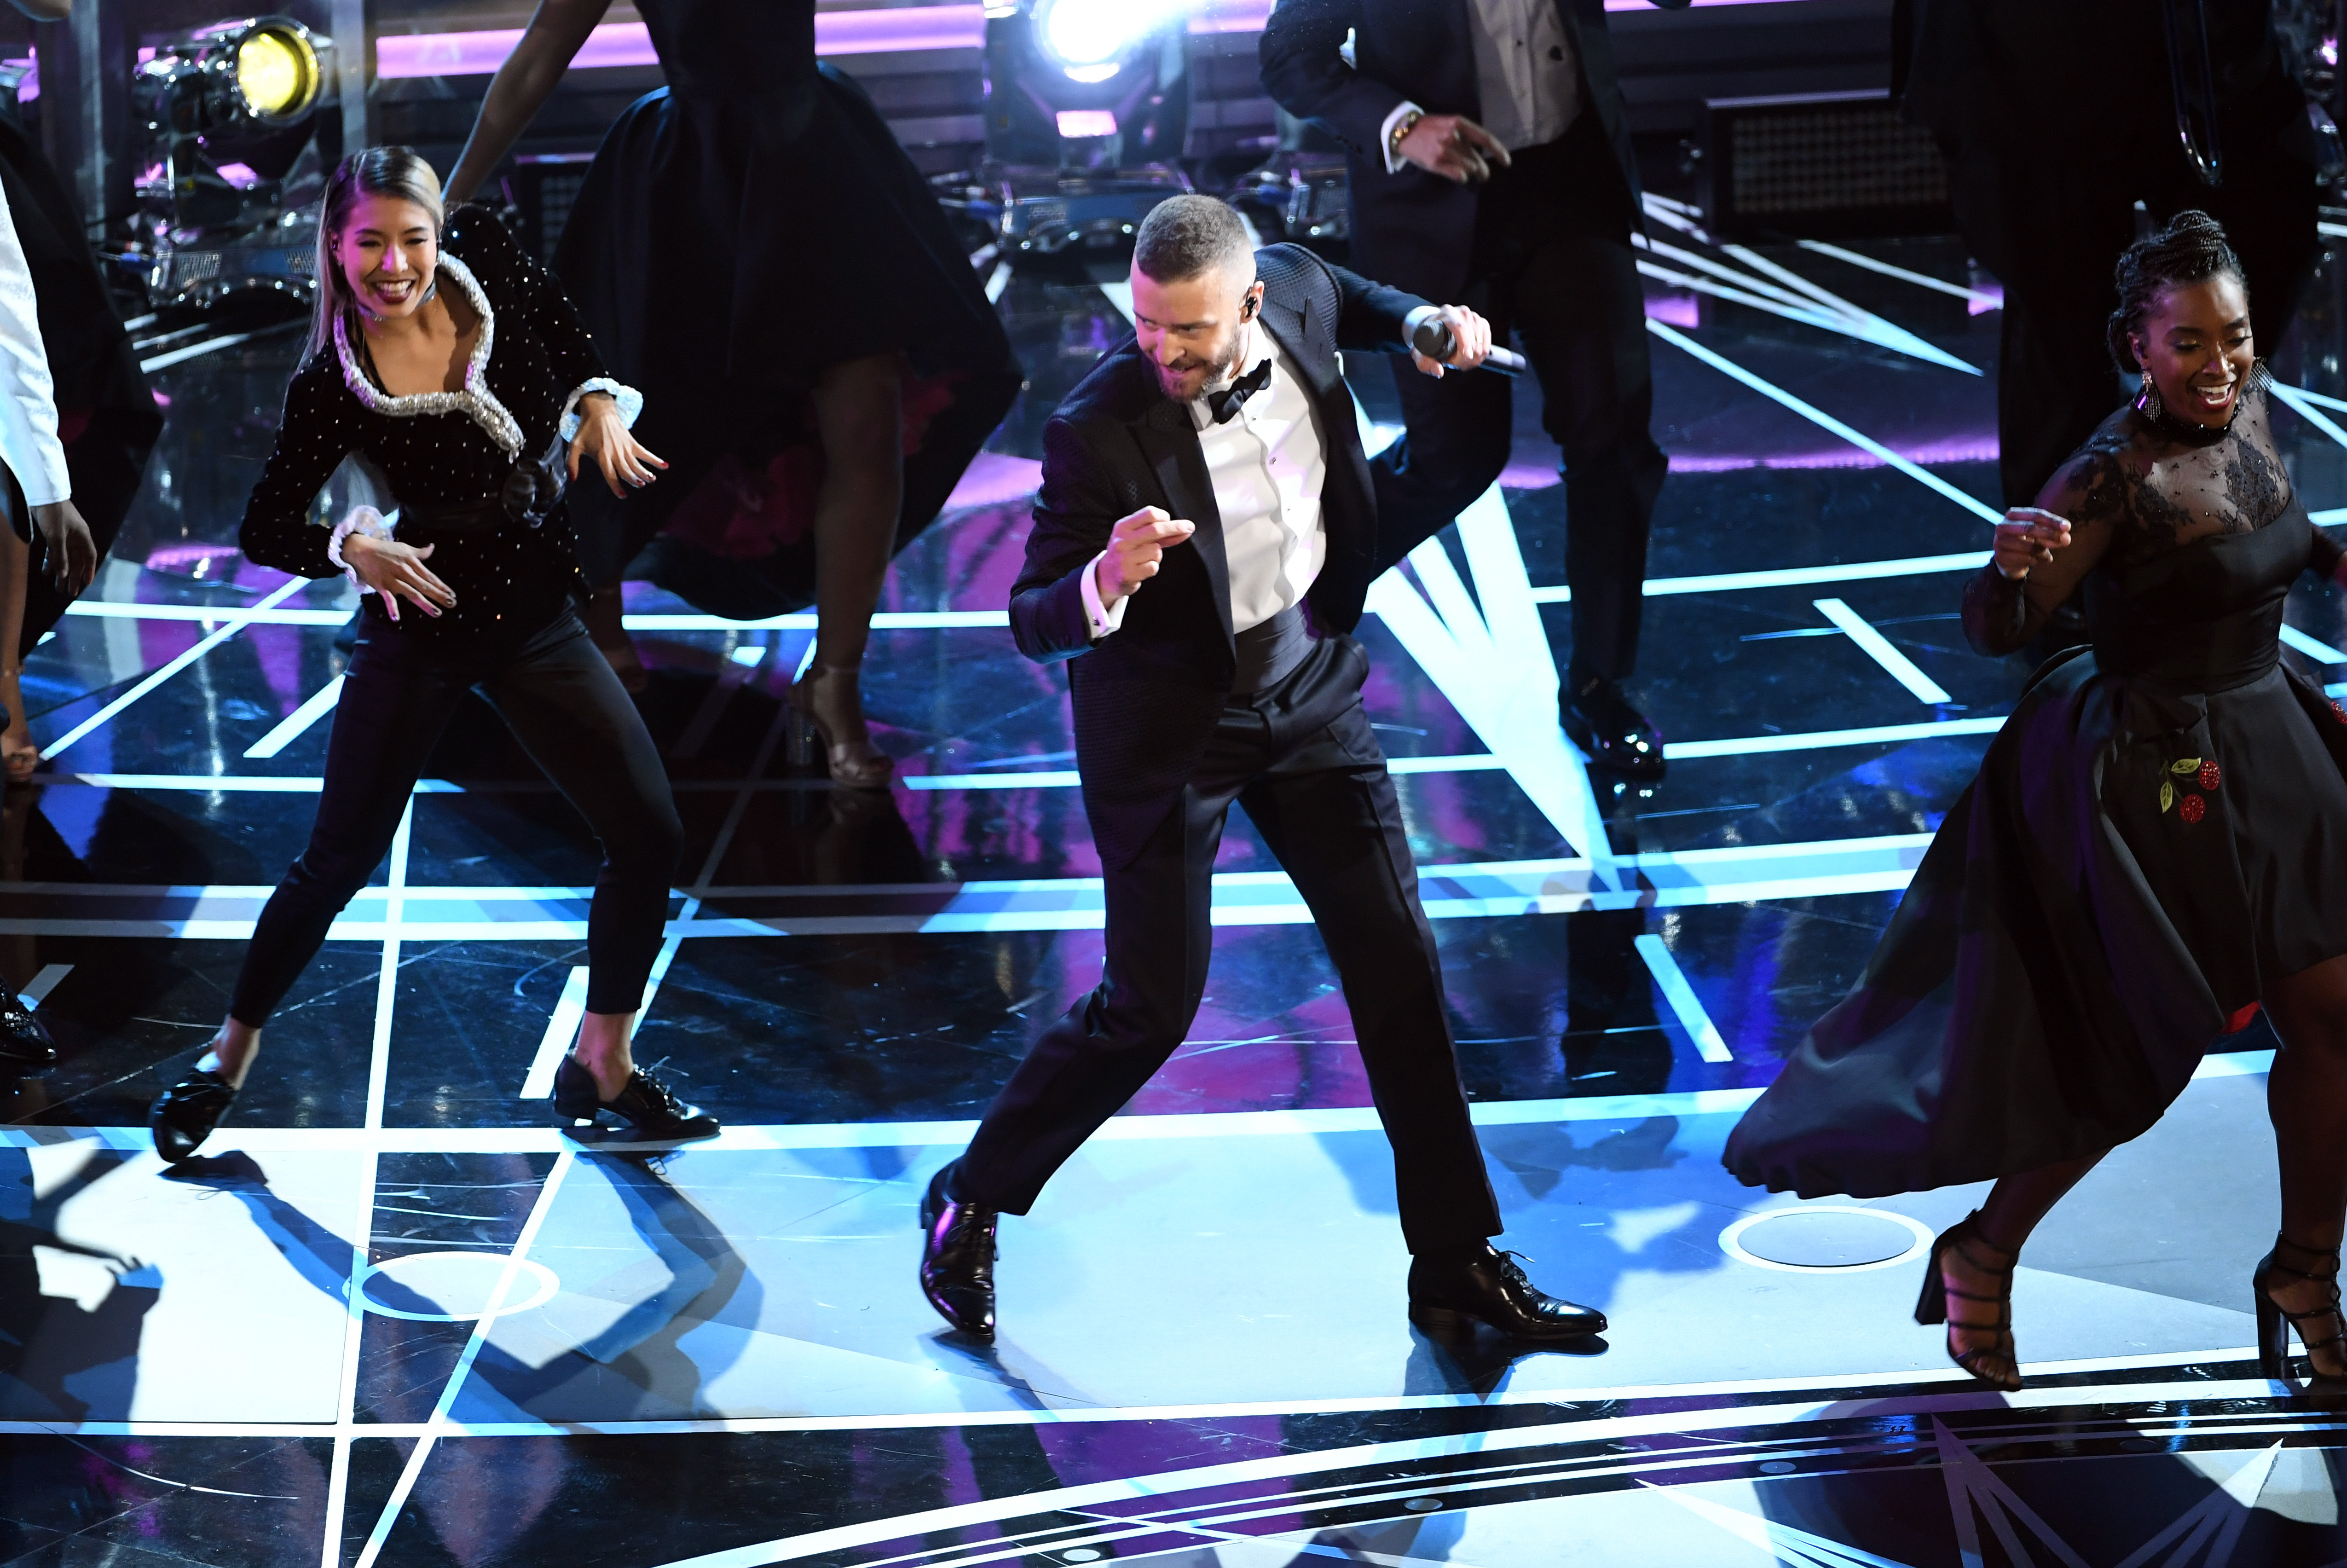 HOLLYWOOD, CA - FEBRUARY 26: Singer/actor Justin Timberlake (C) performs onstage during the 89th Annual Academy Awards at Hollywood & Highland Center on February 26, 2017 in Hollywood, California. (Photo by Kevin Winter/Getty Images)